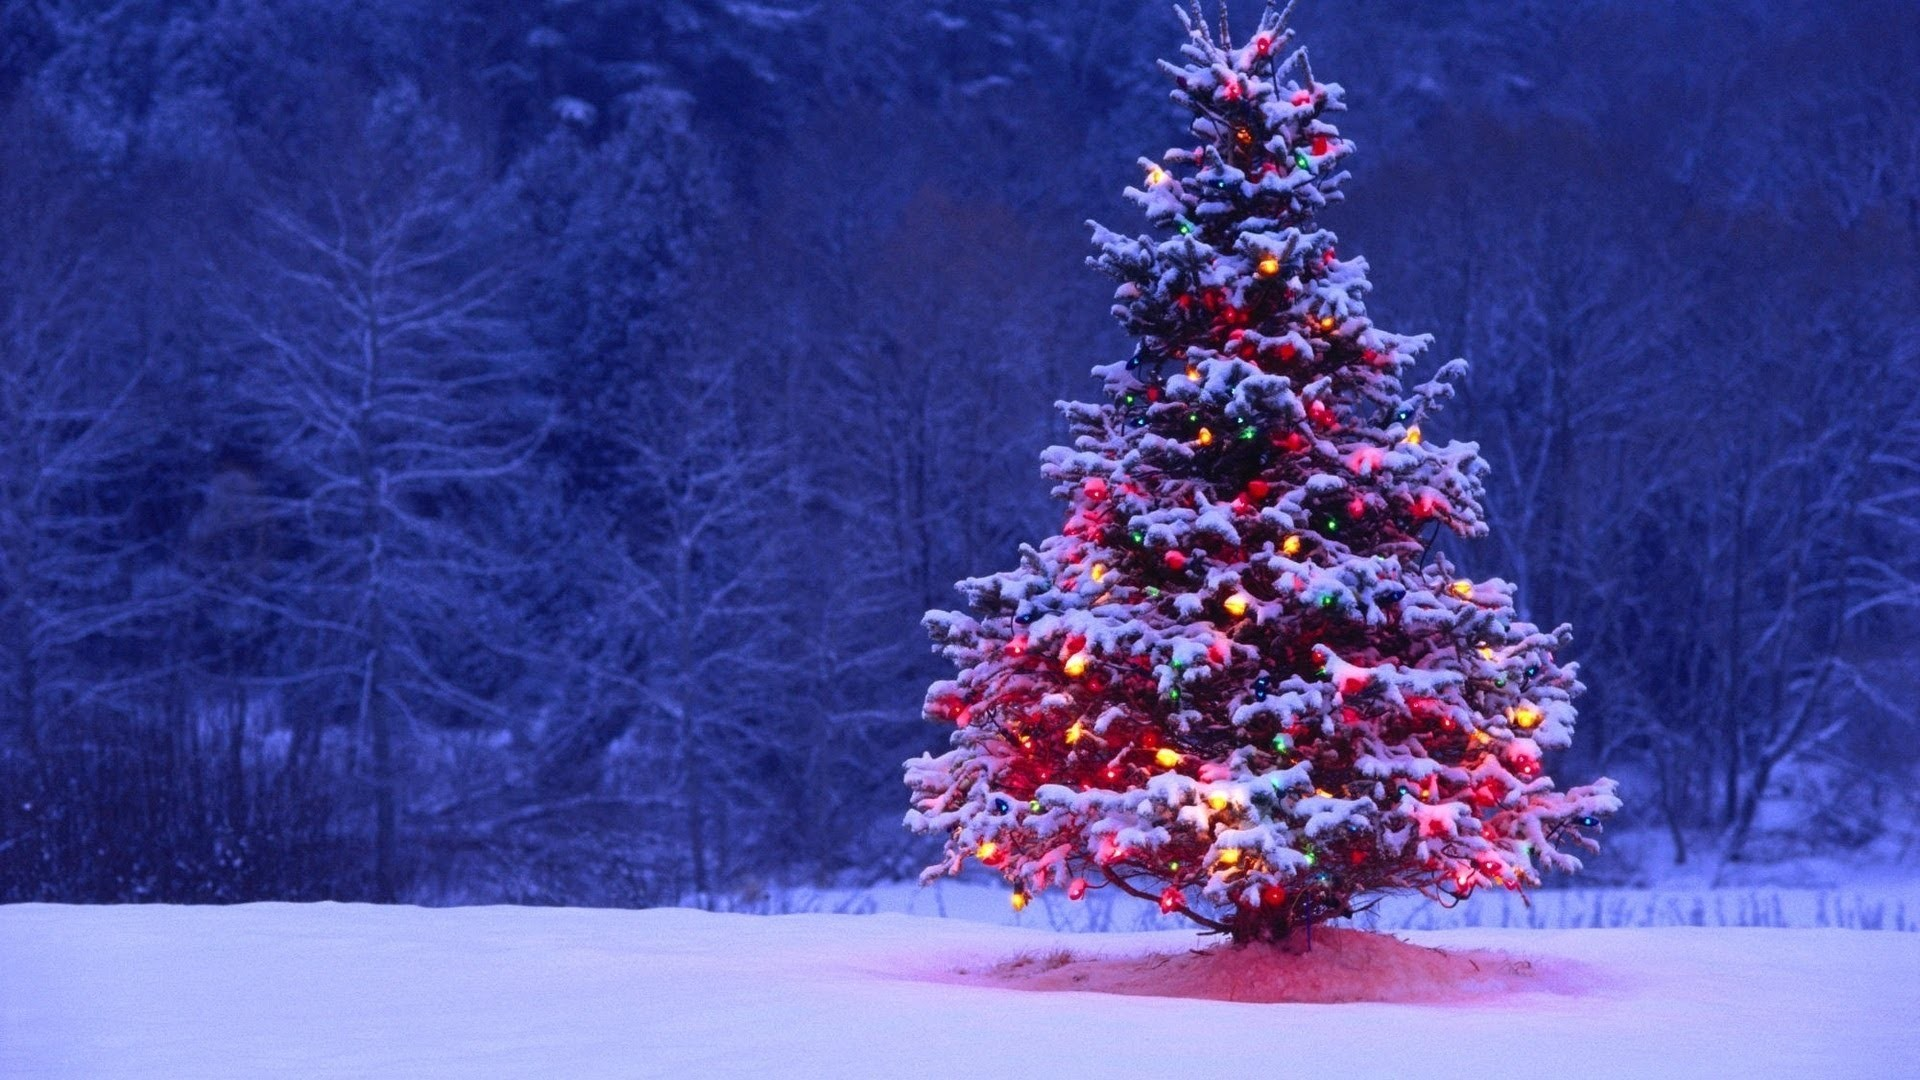 1920x1080 Christmas iPhone Wallpaper | Christmas Tree Wallpaper iPhone App Review